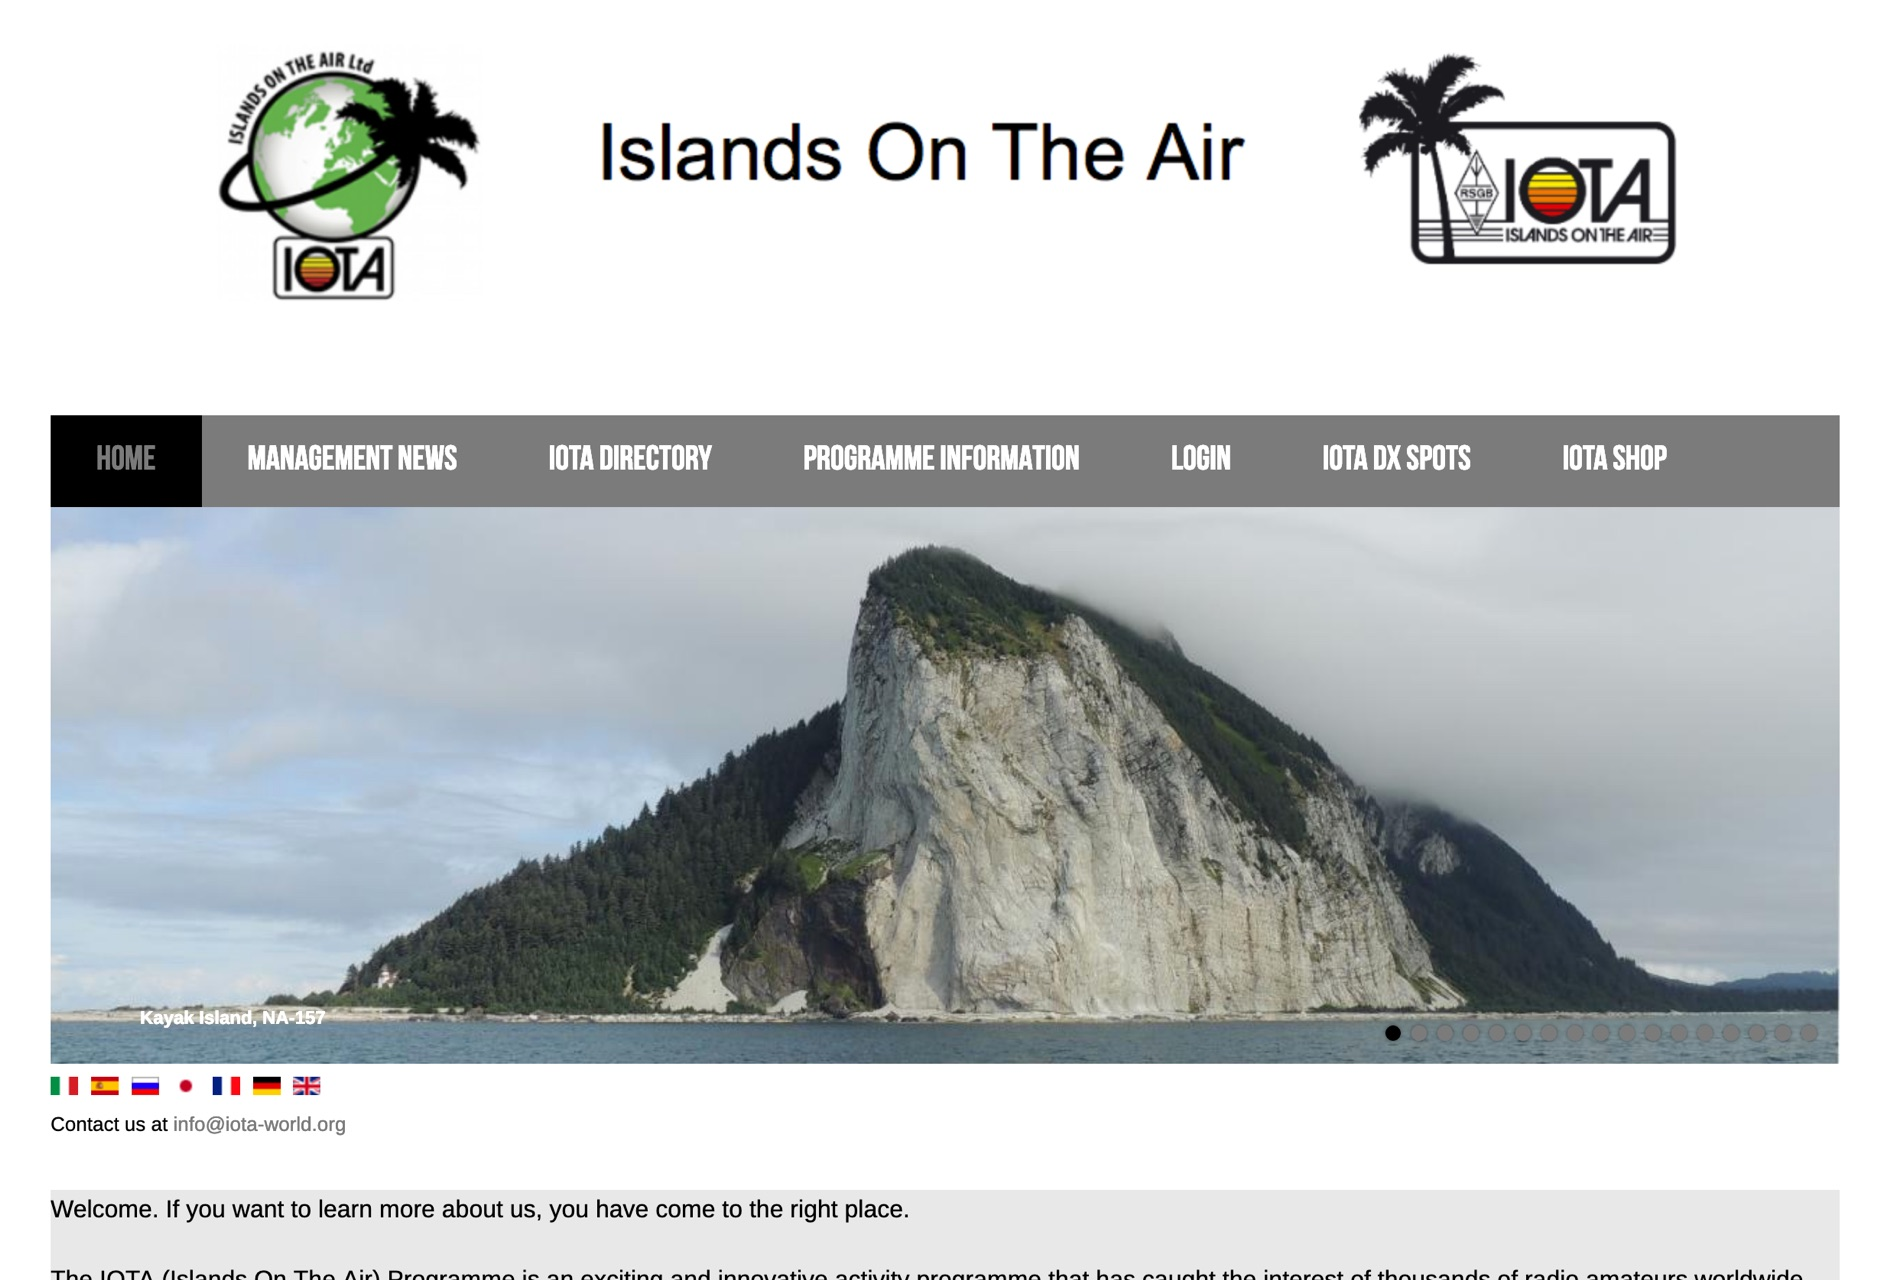 Islands on the Air - IOTA